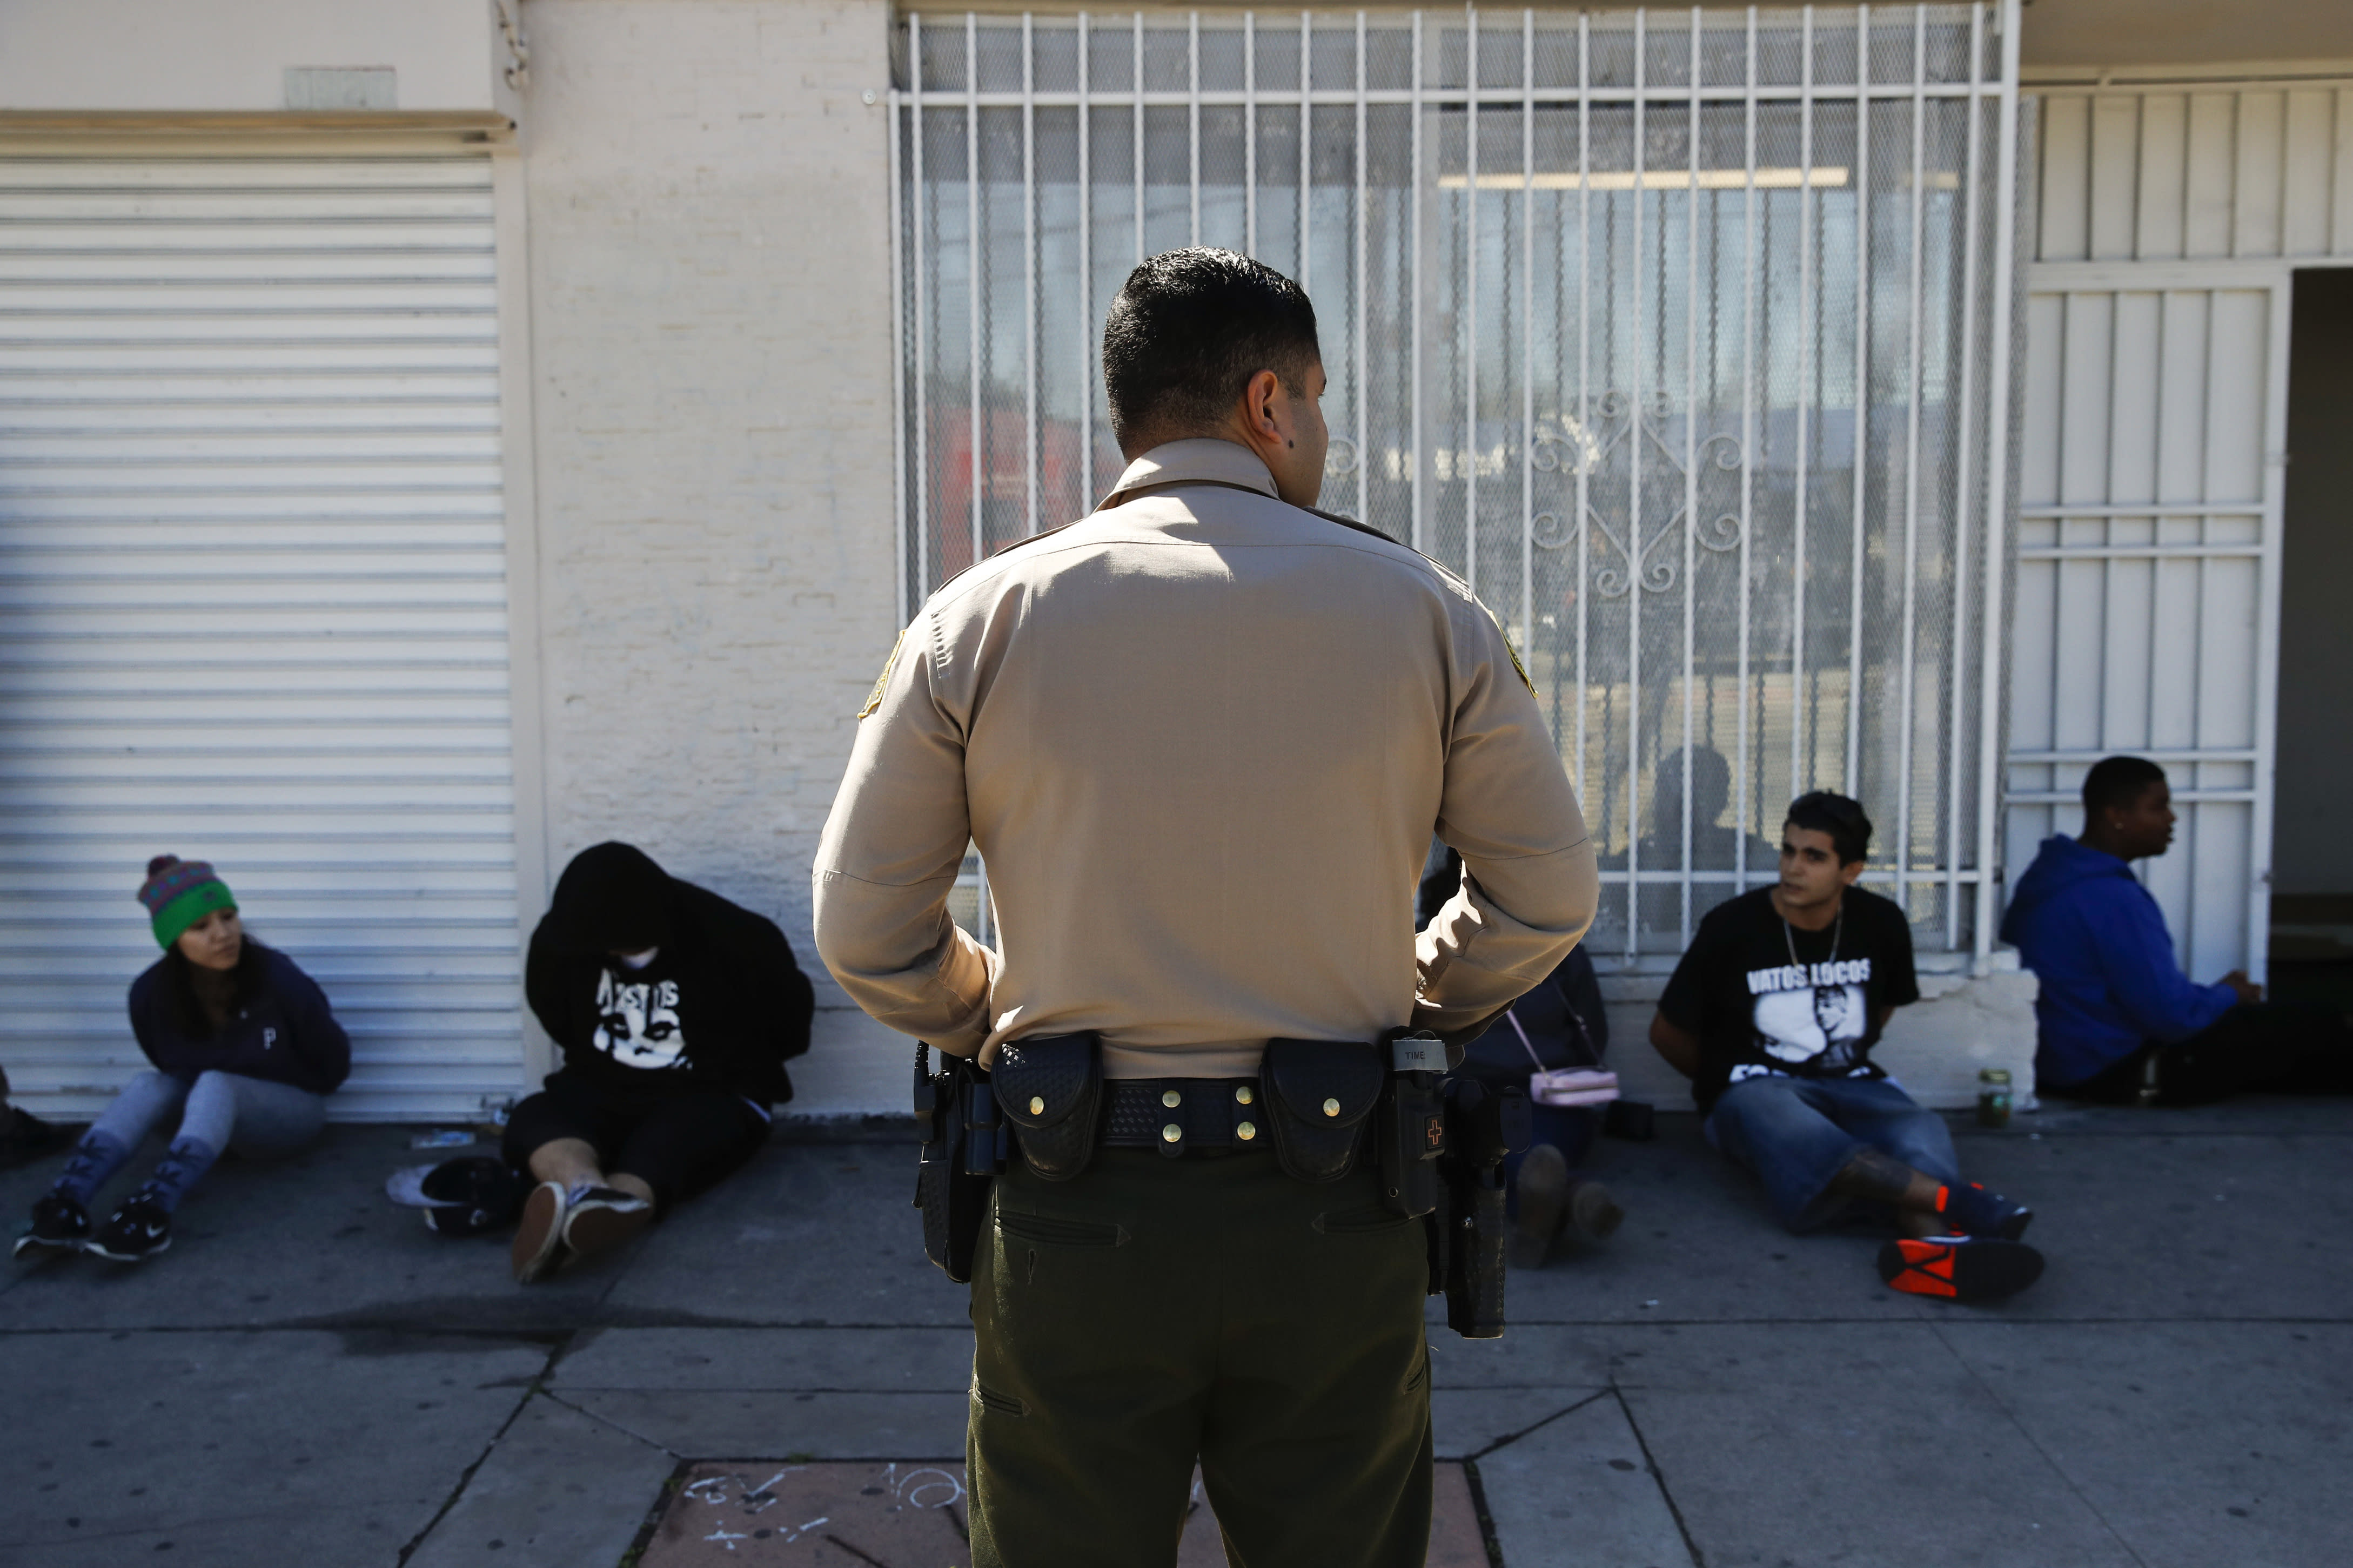 FILE - In this March 15, 2018 file photo, a Los Angeles County Sheriff's deputy keeps watch on a group of people apprehended at an illegal marijuana dispensary in Compton, Calif. The number of felony marijuana arrests in California continued to plunge in 2019 in the age of legalization, but another trend remained unchanged: those arrests fell disproportionately on Hispanics and Blacks, state data showed. (AP Photo/Jae C. Hong, File)